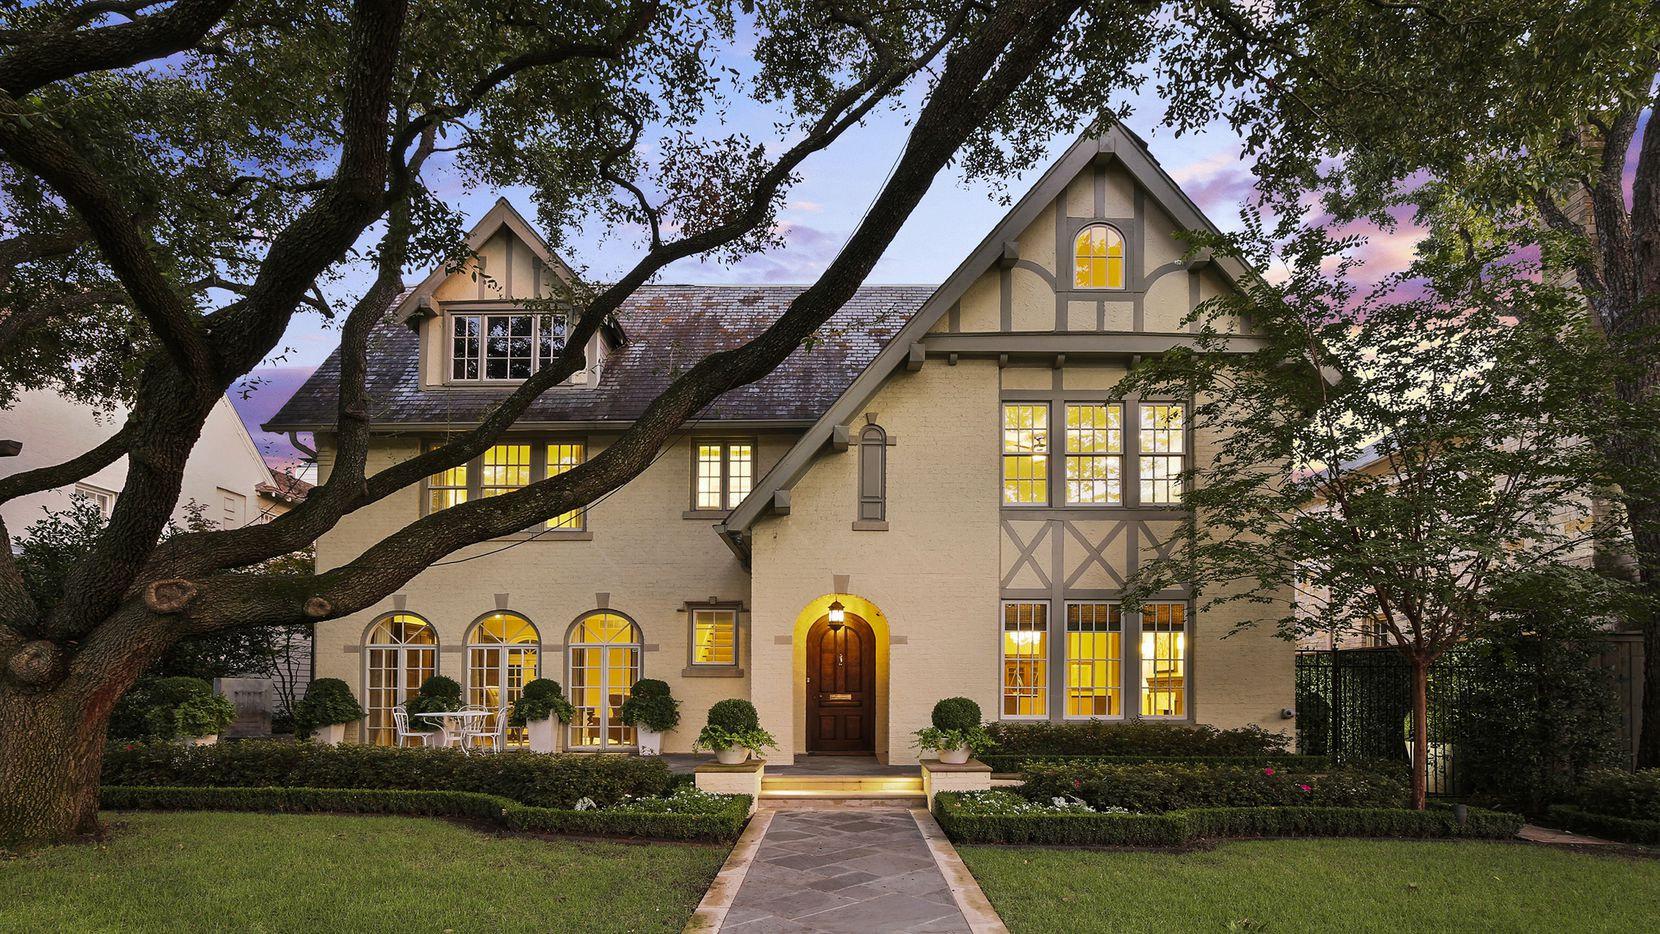 The five-bedroom Tudor-style home at 3509 Princeton Ave. in Highland Park is pending.